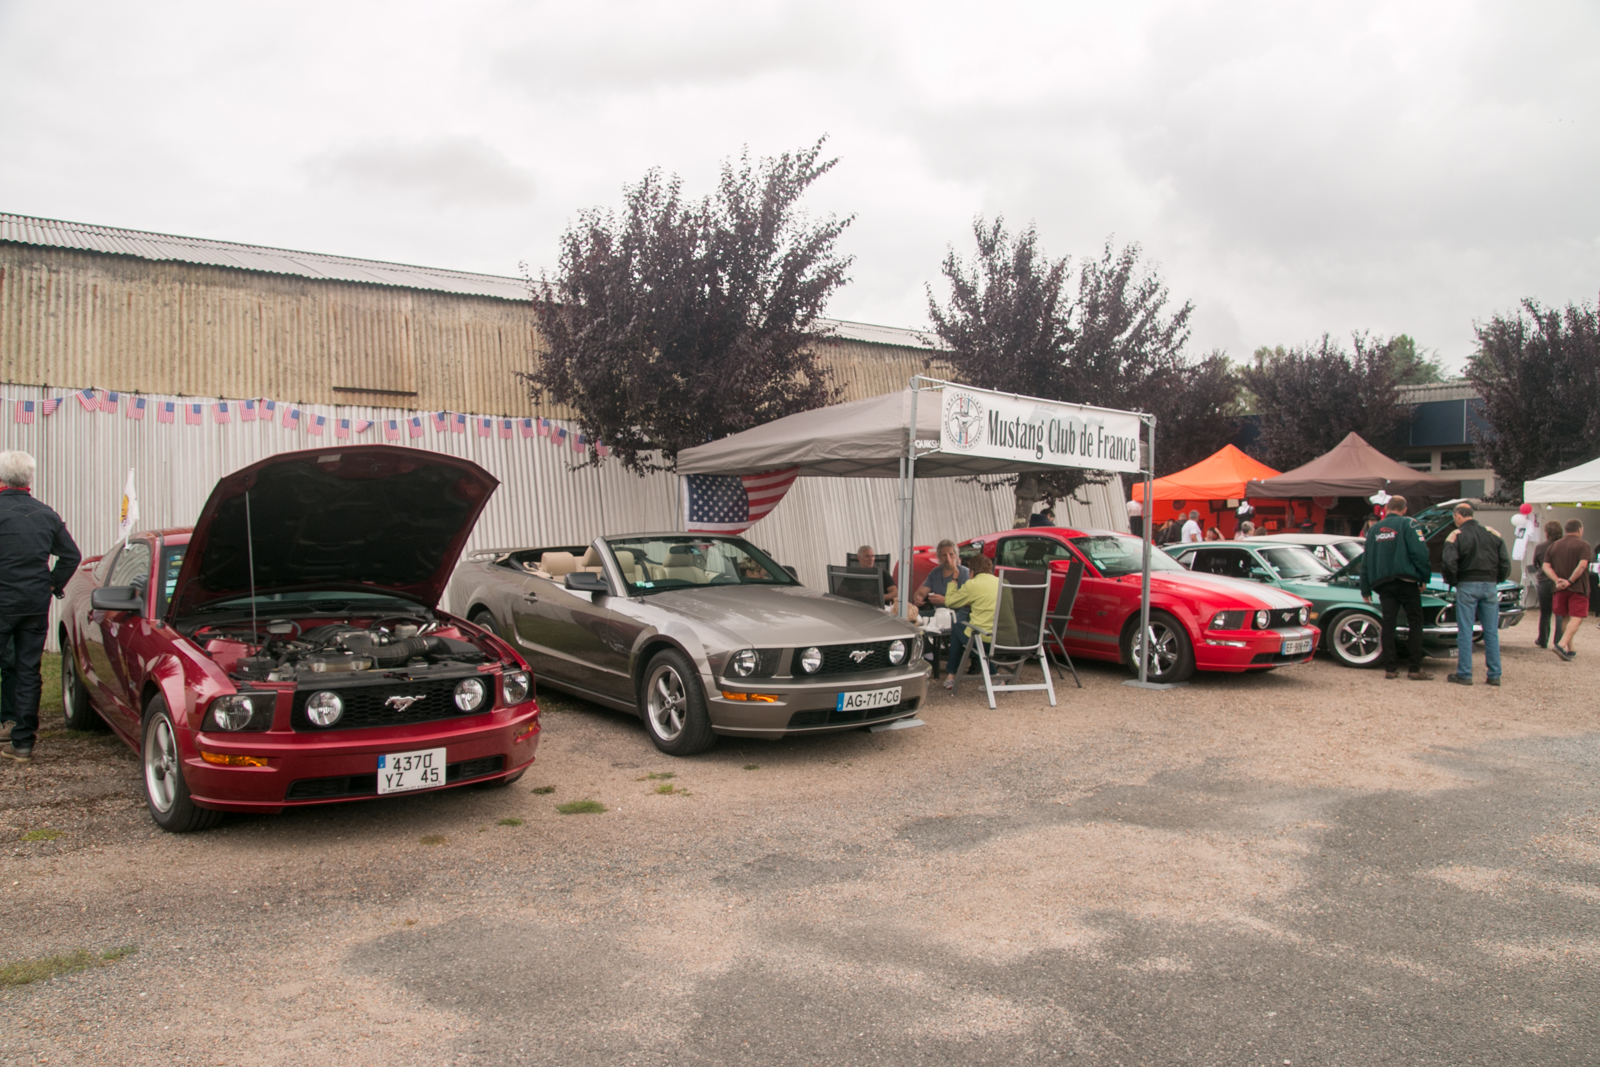 Mustang Club France